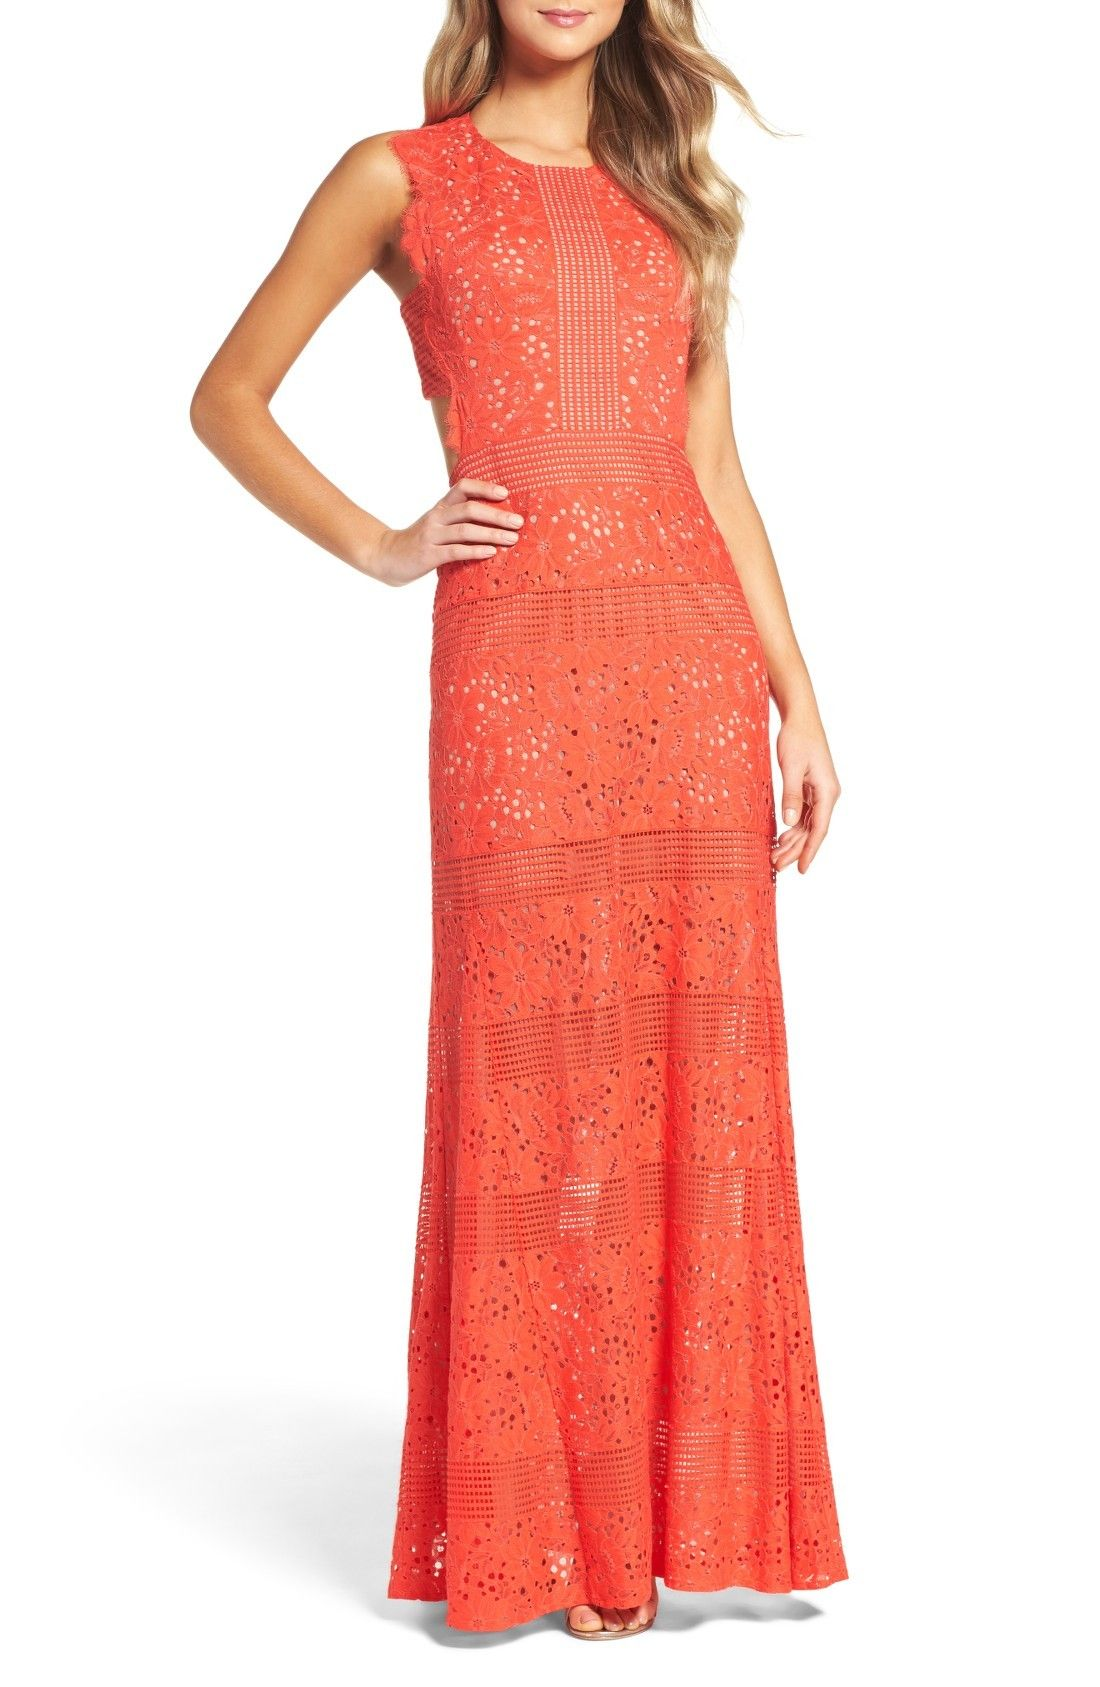 Collared openback lace dress cocktail dresses pinterest